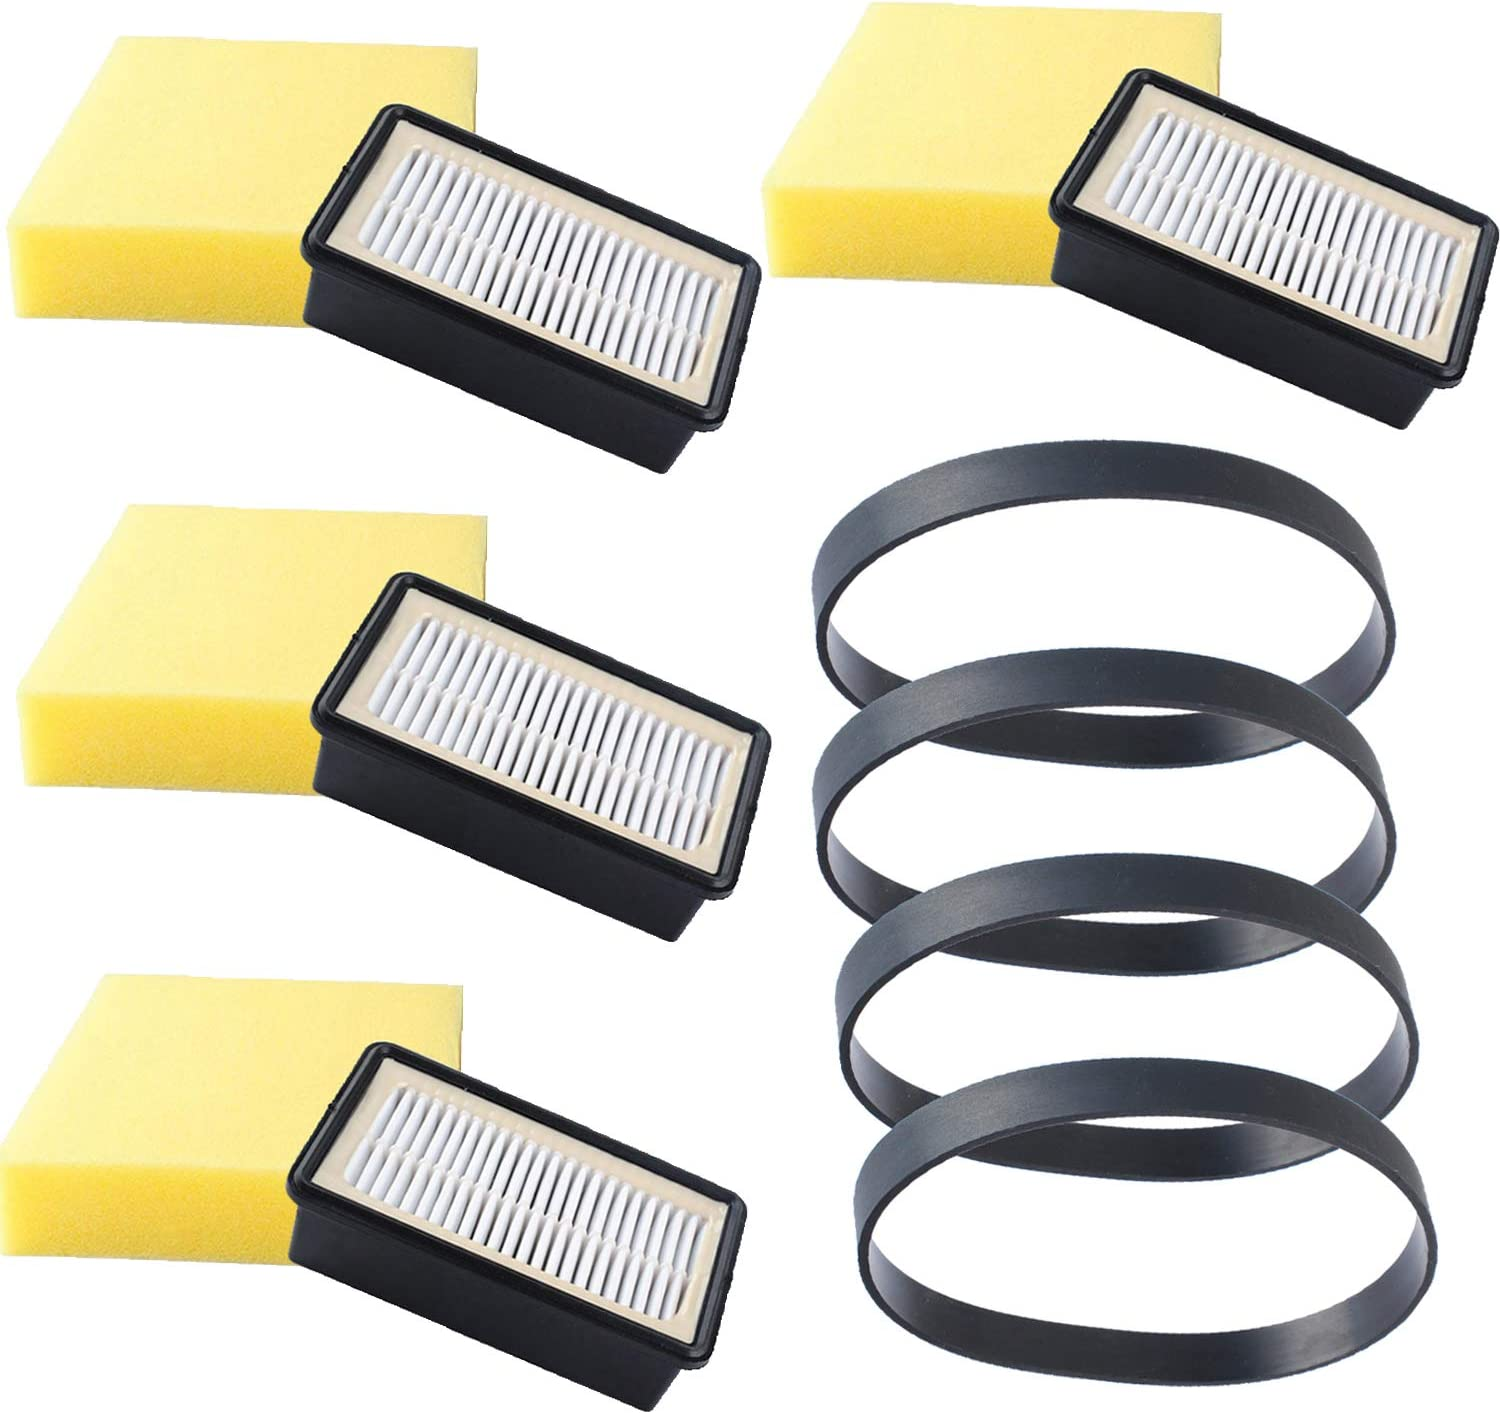 1008 Filters & 3031120 Belts for Bissell 9595A CleanView Upright Vacuums Style 7 9 10 12 14, 1330 1331 1332 1413 8531 9595 12151 Pre-Motor and Post-Motor Filter, Replace Part Number 1601502 & 2032663